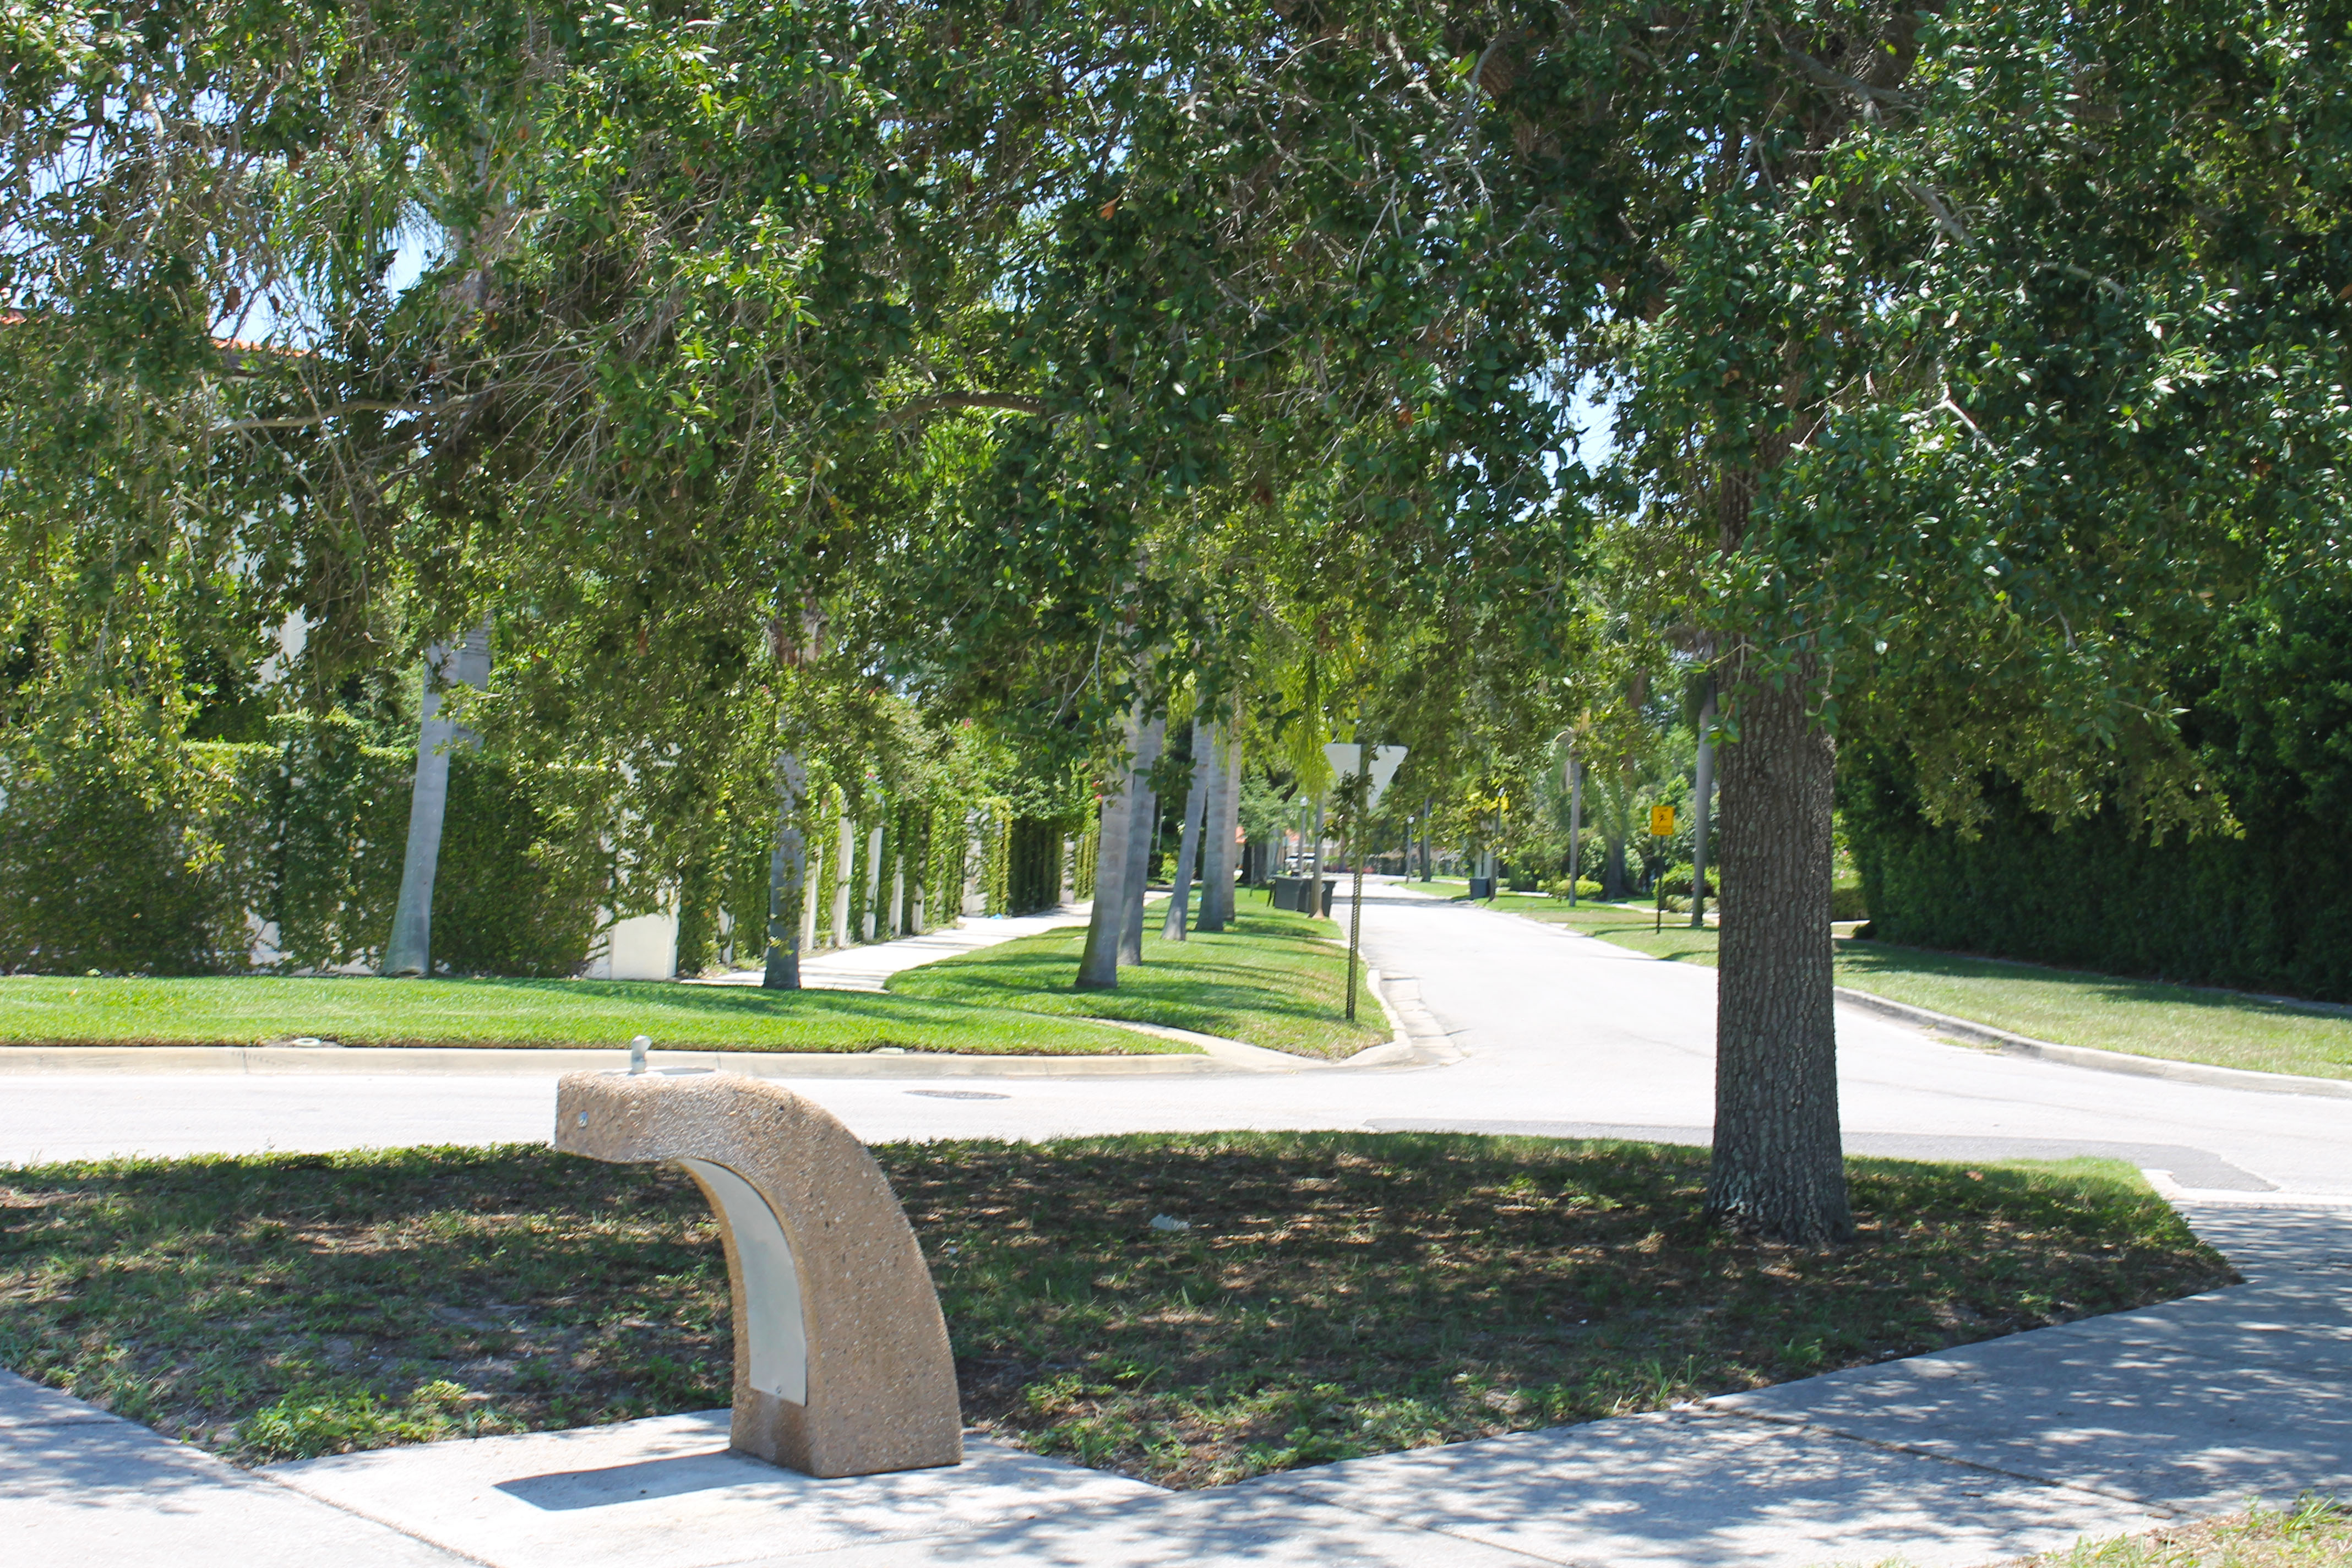 The water fountain in Palmview Park next to the sidewalk with a tree in the background